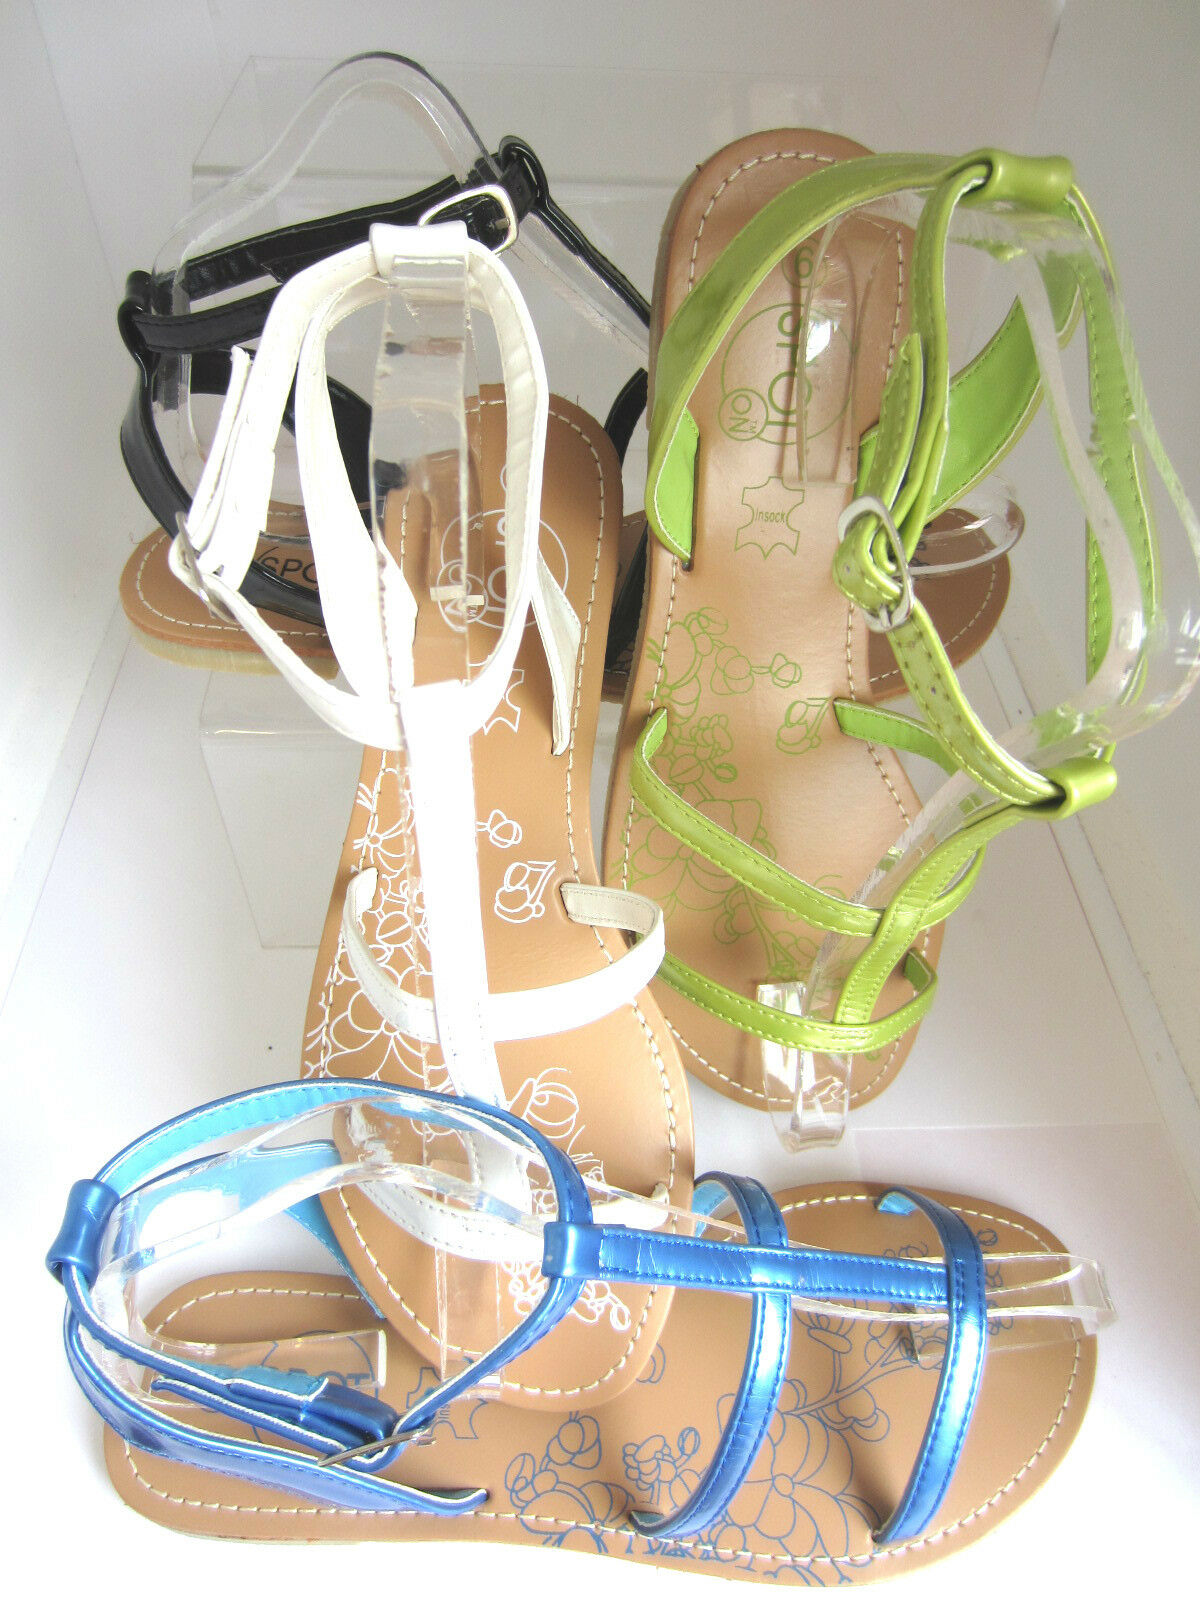 Spot On White Ladies Strappy Sandals, Ice White On Green,Blue, Black  F0338 (R8A) aa518c